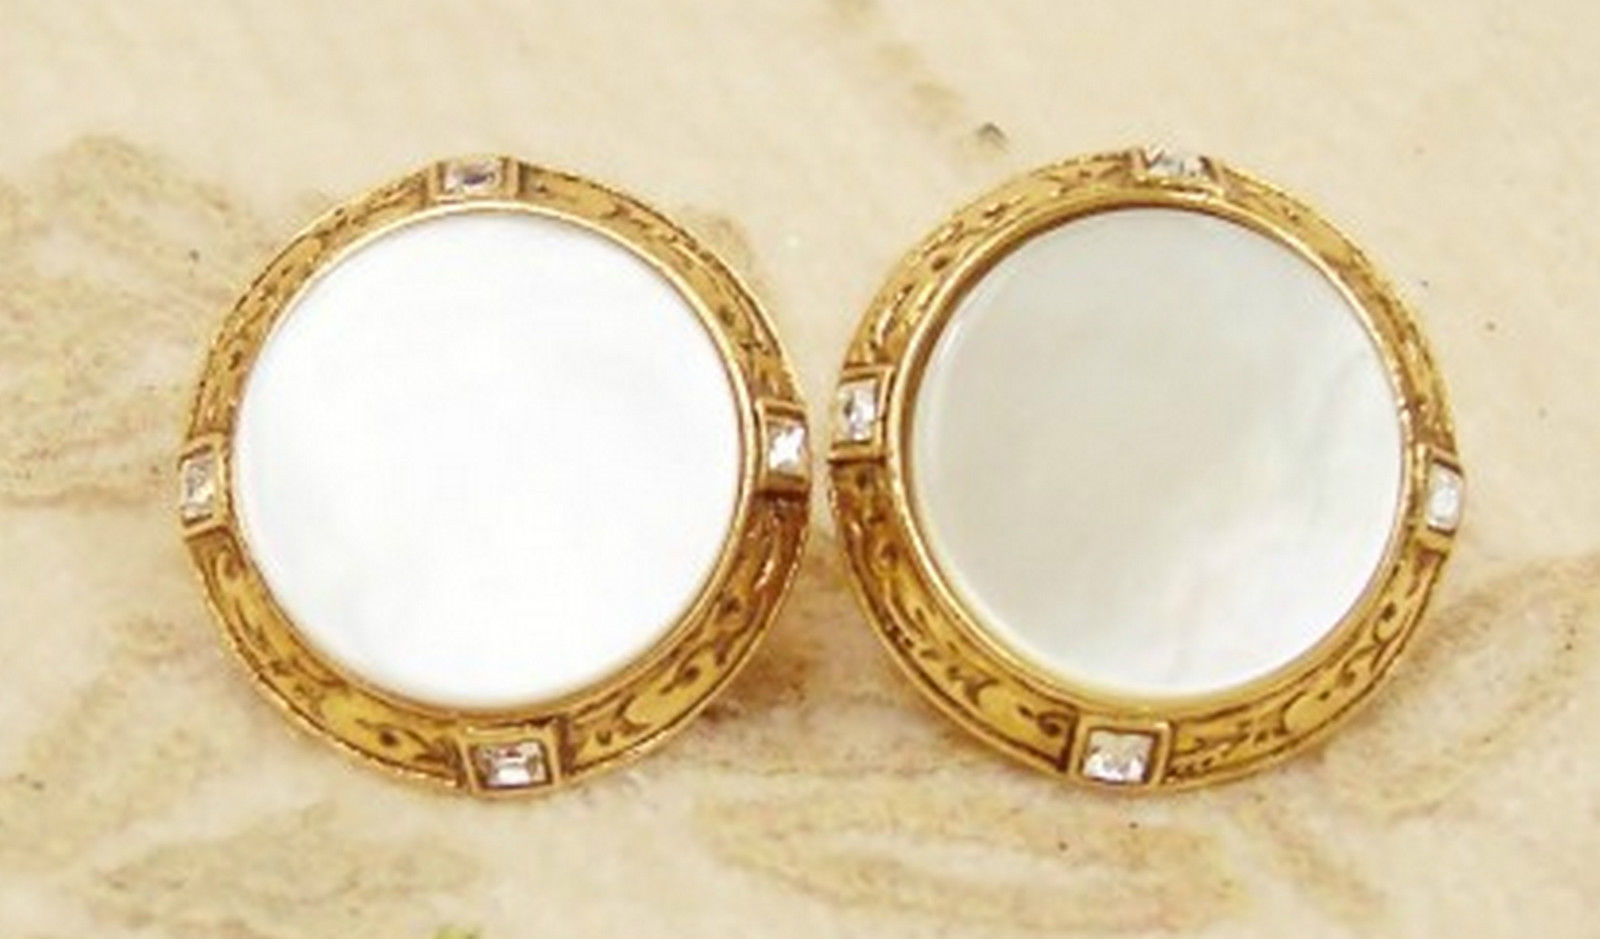 Vatican Jewelry Collection Earrings Mother of Pearl MOP Vintage Jewelry Mint